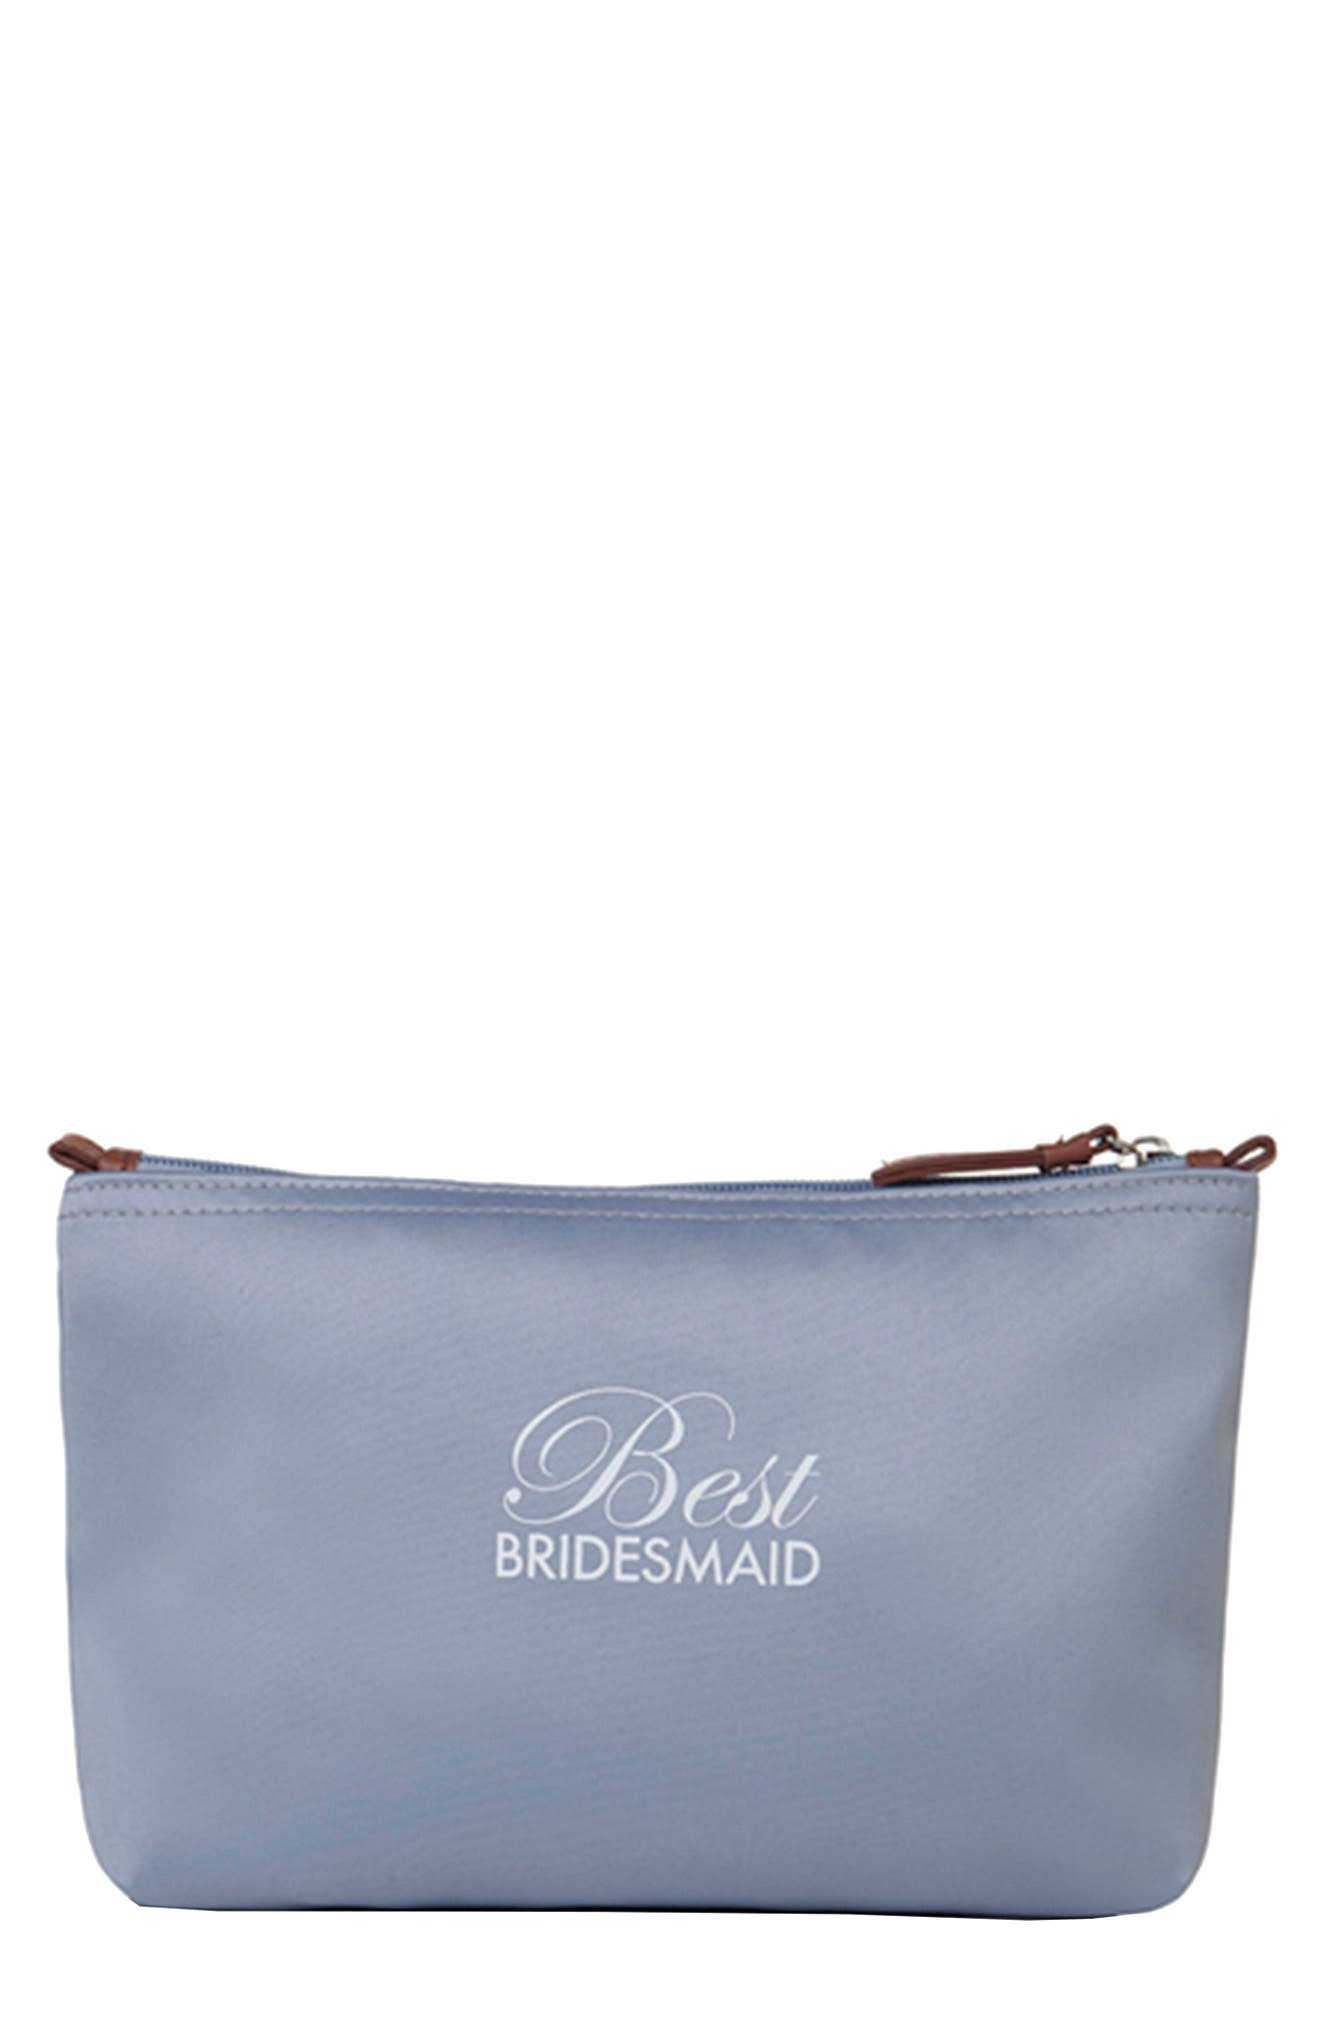 'Best Bridesmaid' Cosmetics Bag,                         Main,                         color, 040